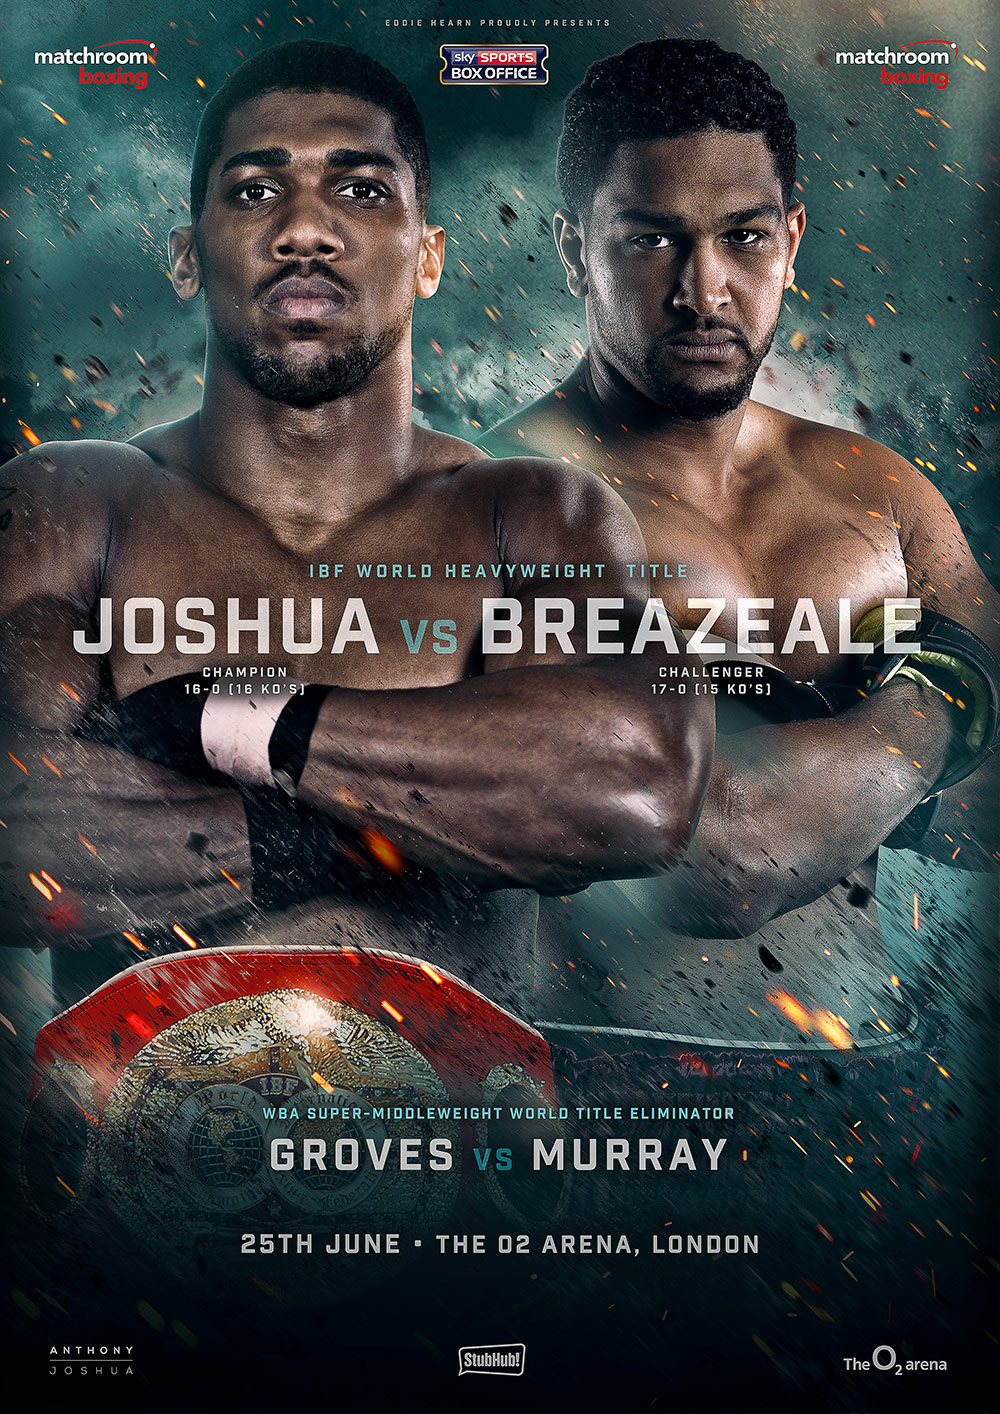 anthony joshua vs dominic breazeale IBF championship title fightboxing poster design